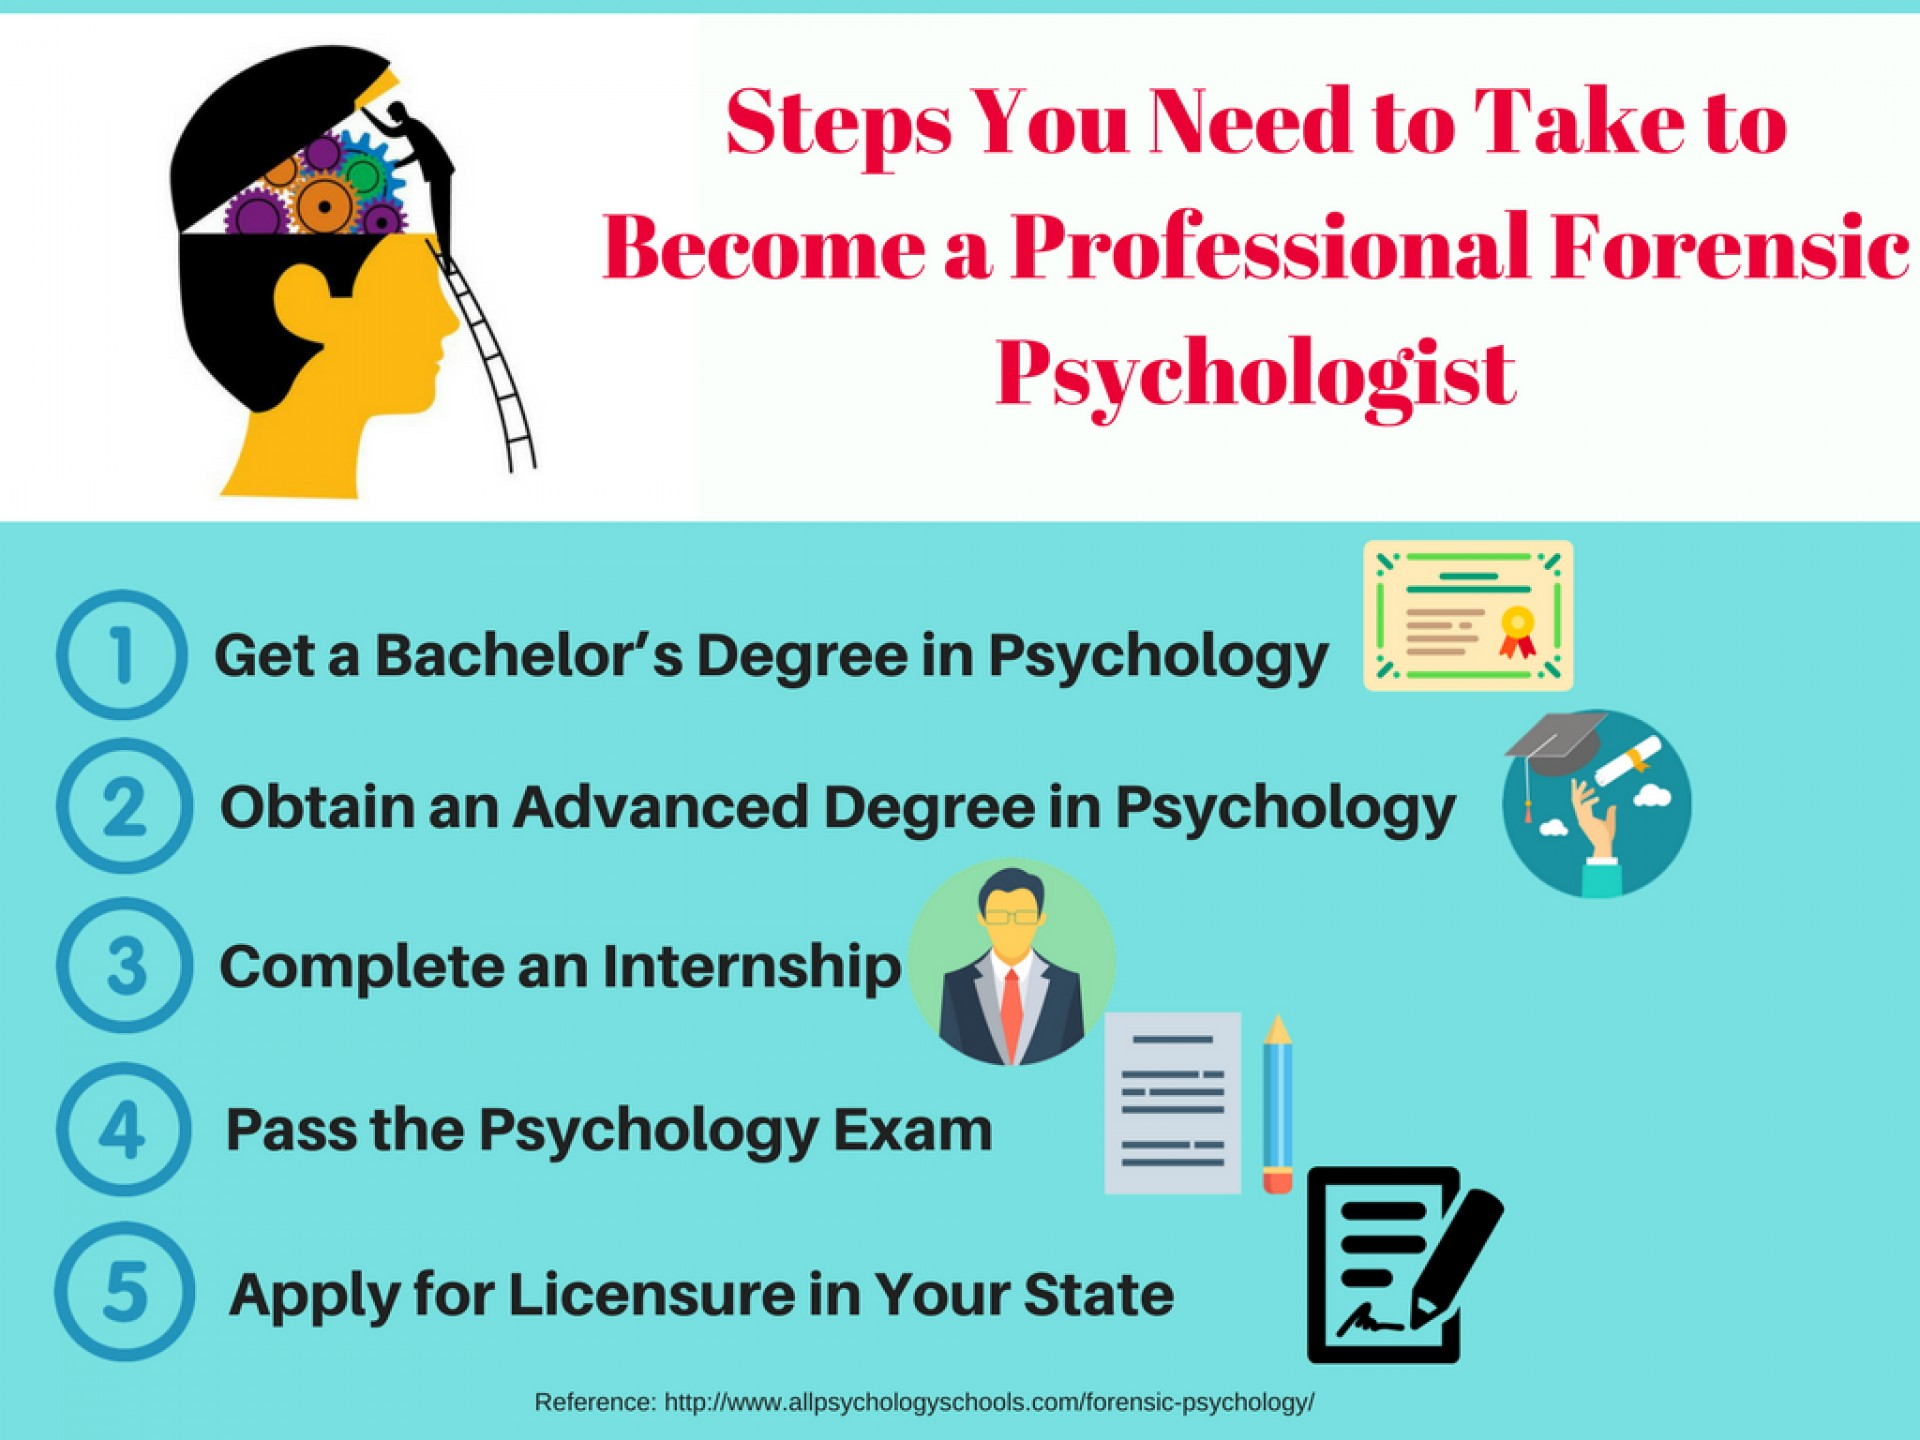 020 Professionalensic Psychologist 1024x768 Research Paper Psychology Topics Unique Forensic For 1920